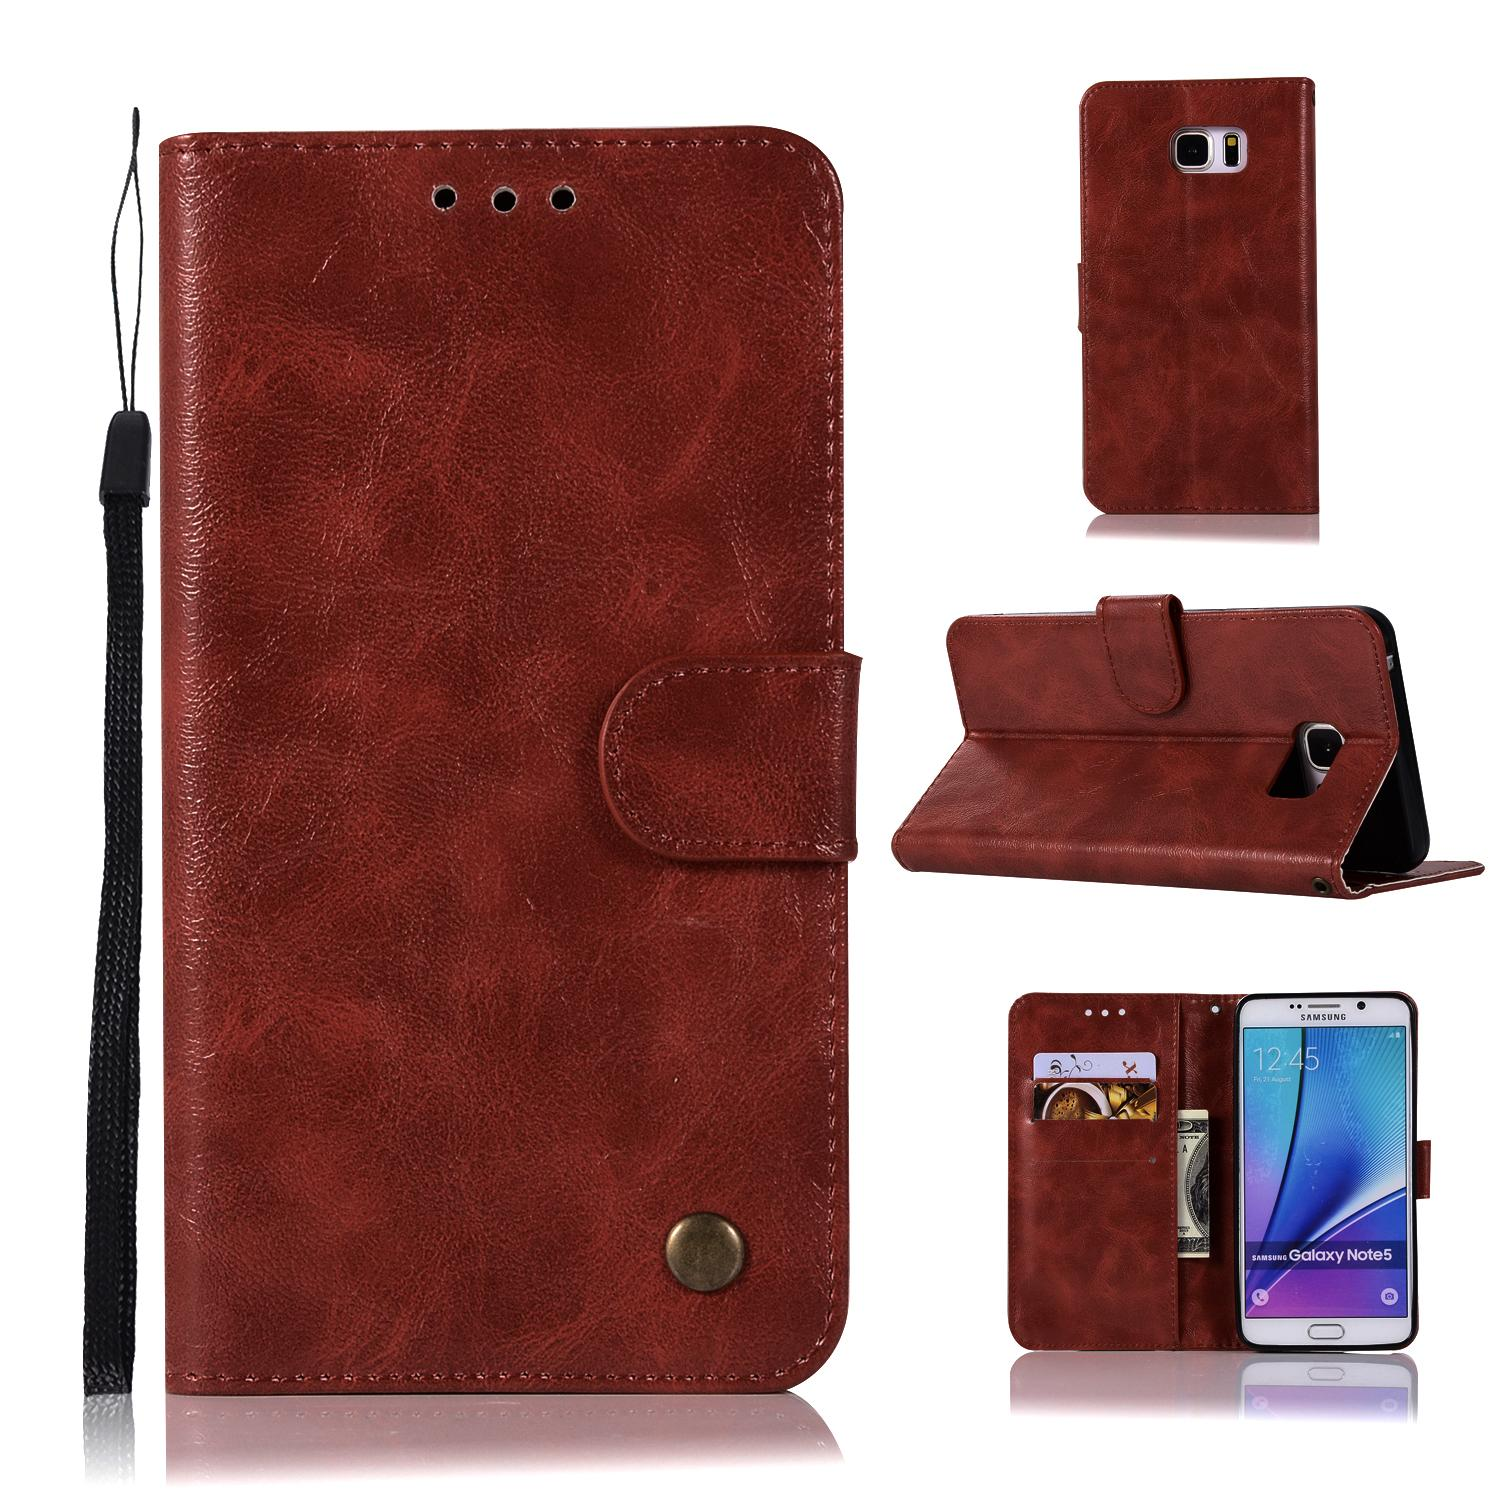 Casing For Samsung Galaxy Note 5 / N9200,reto Leather Wallet Case Magnetic Double Card Holder Flip Cover By Life Goes On.